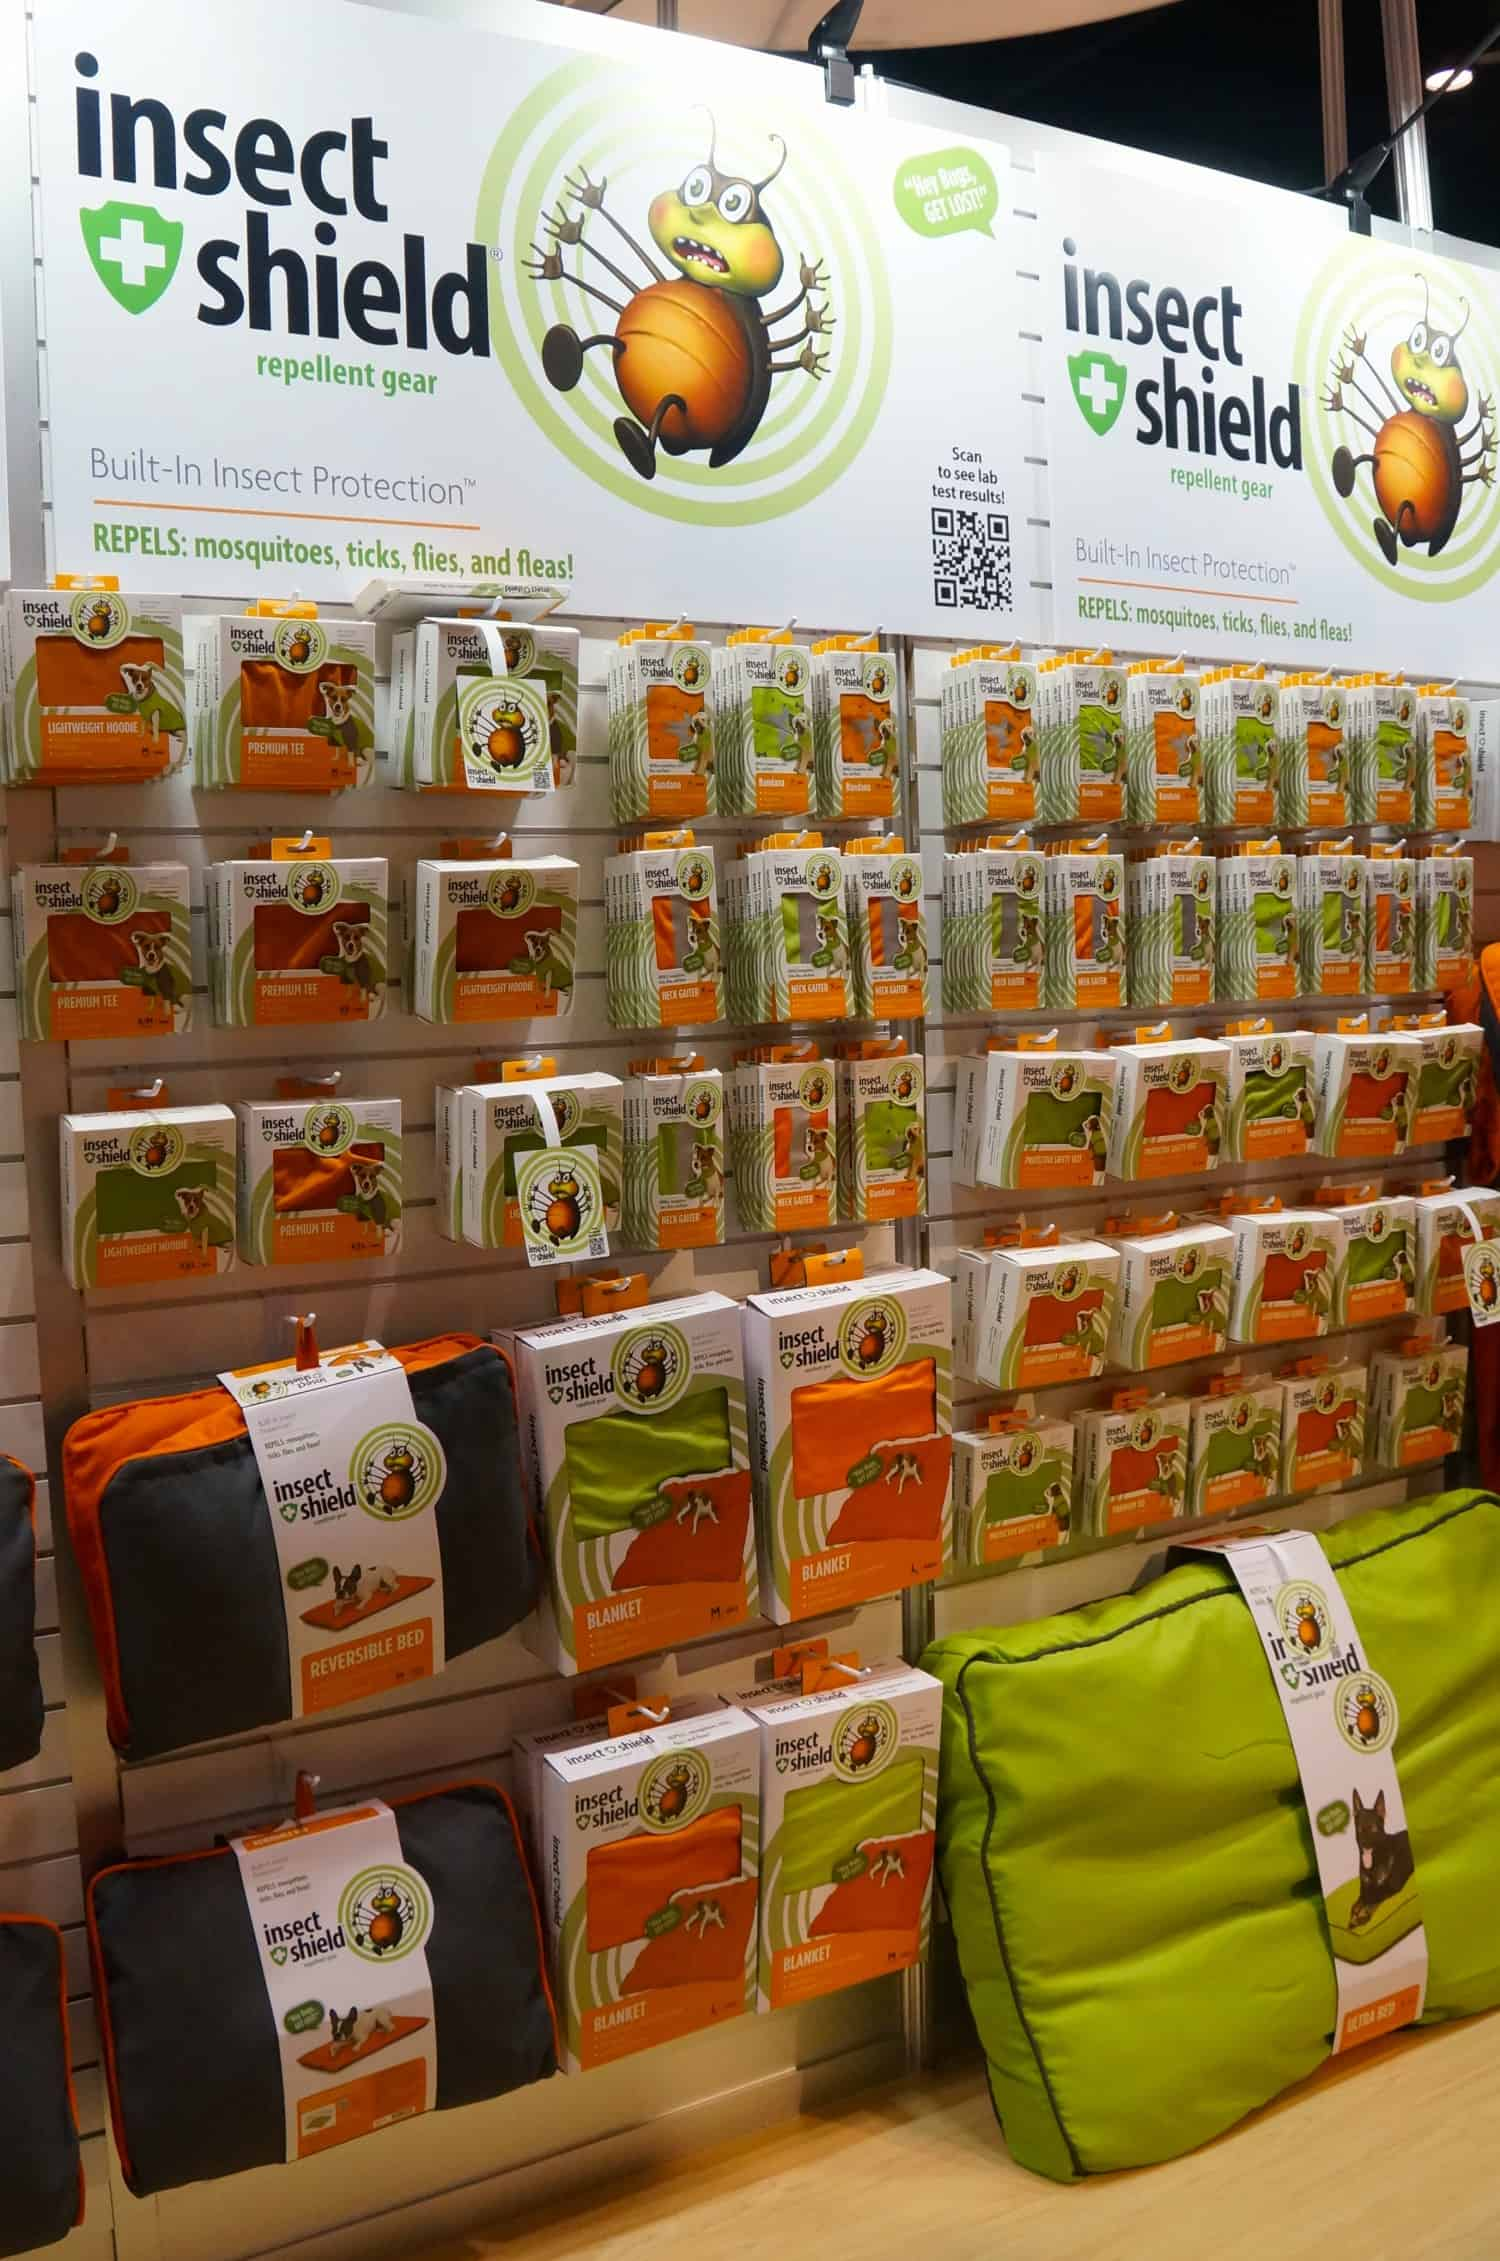 Insect Shield at Global Pet Expo 2015 - Orlando, FL